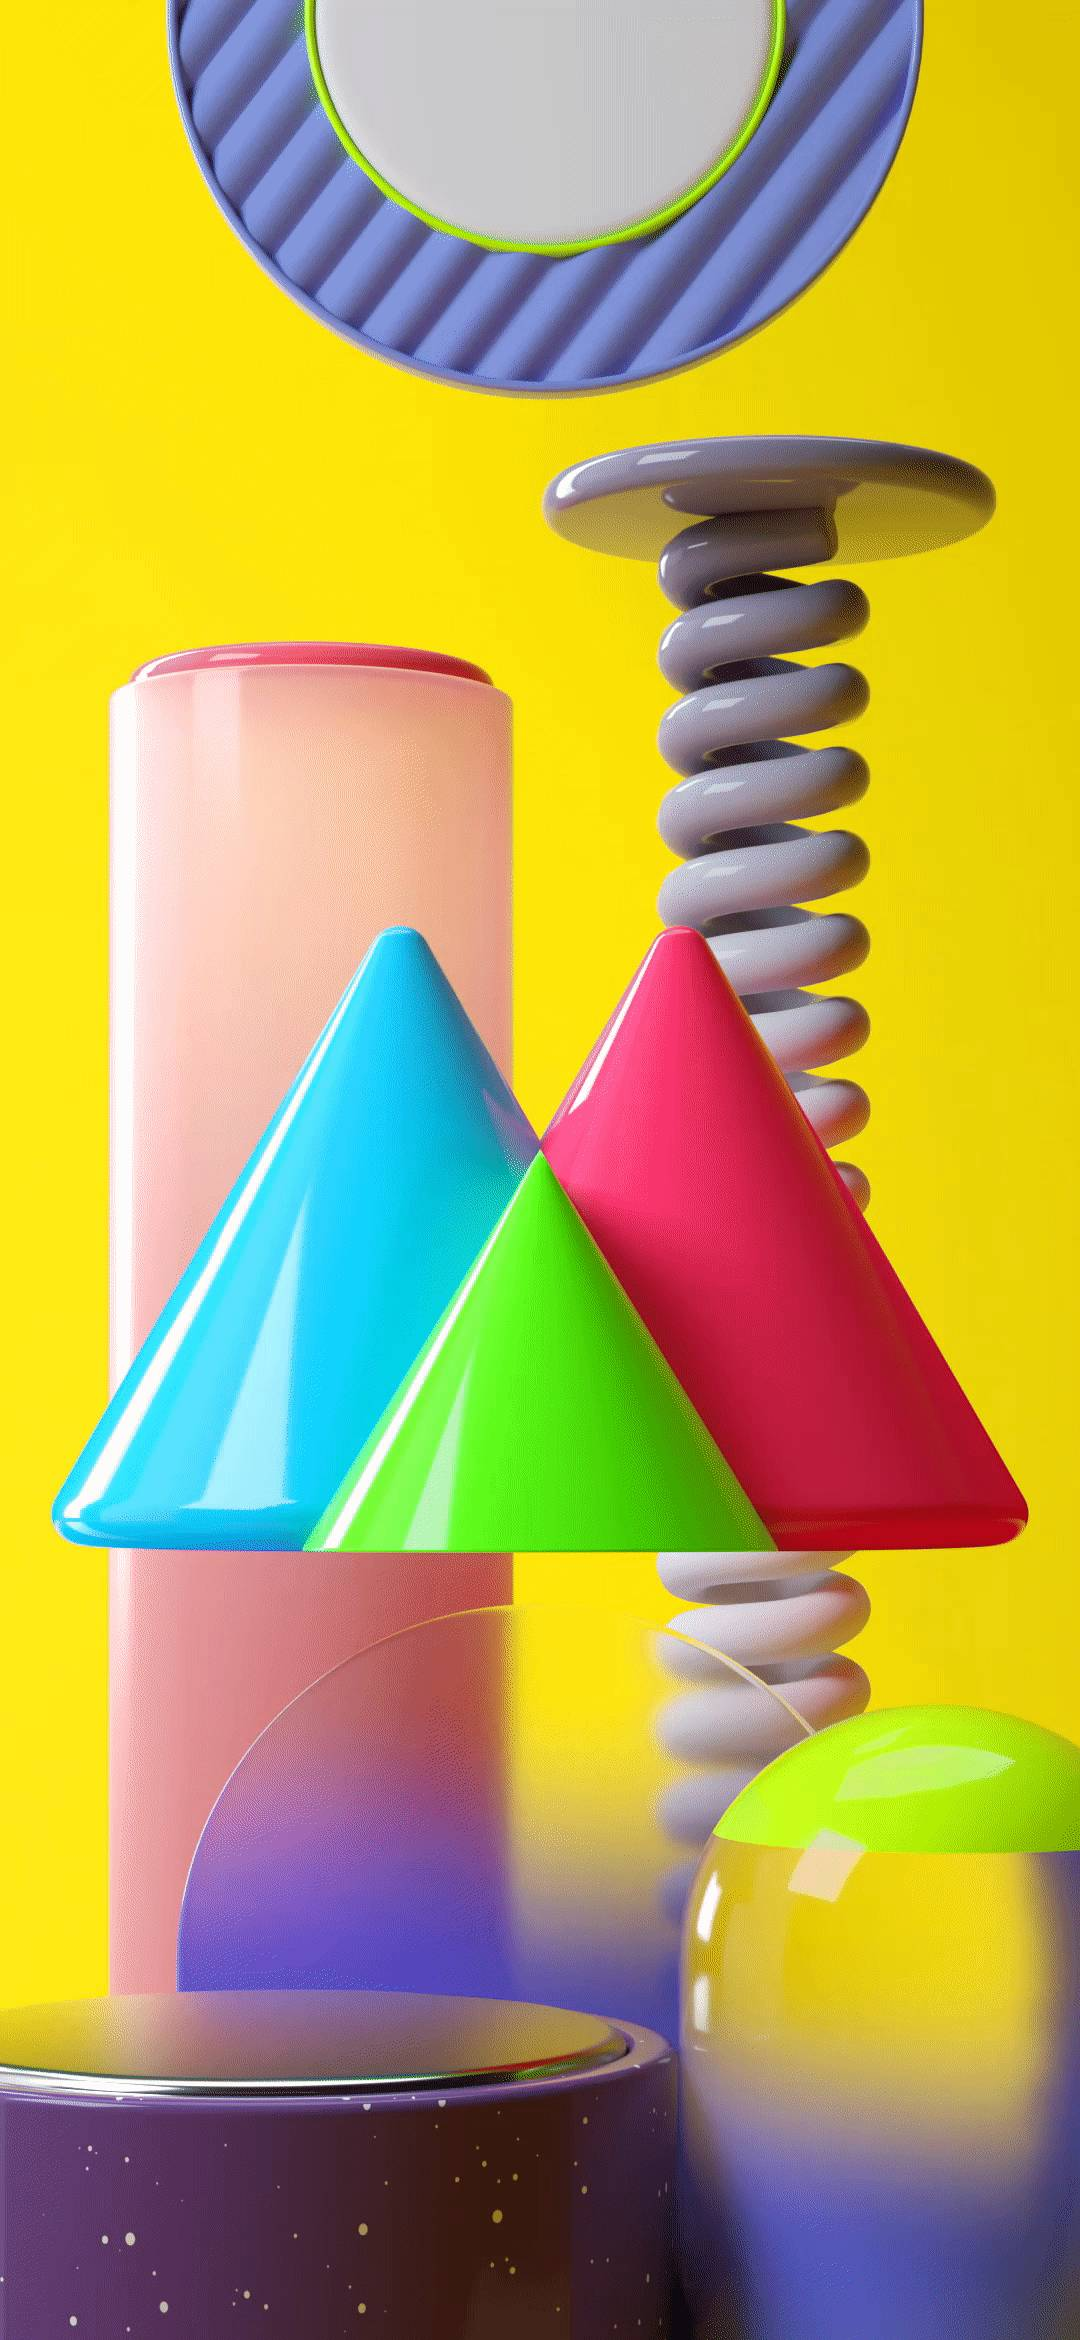 samsung m31 stock wallpapers